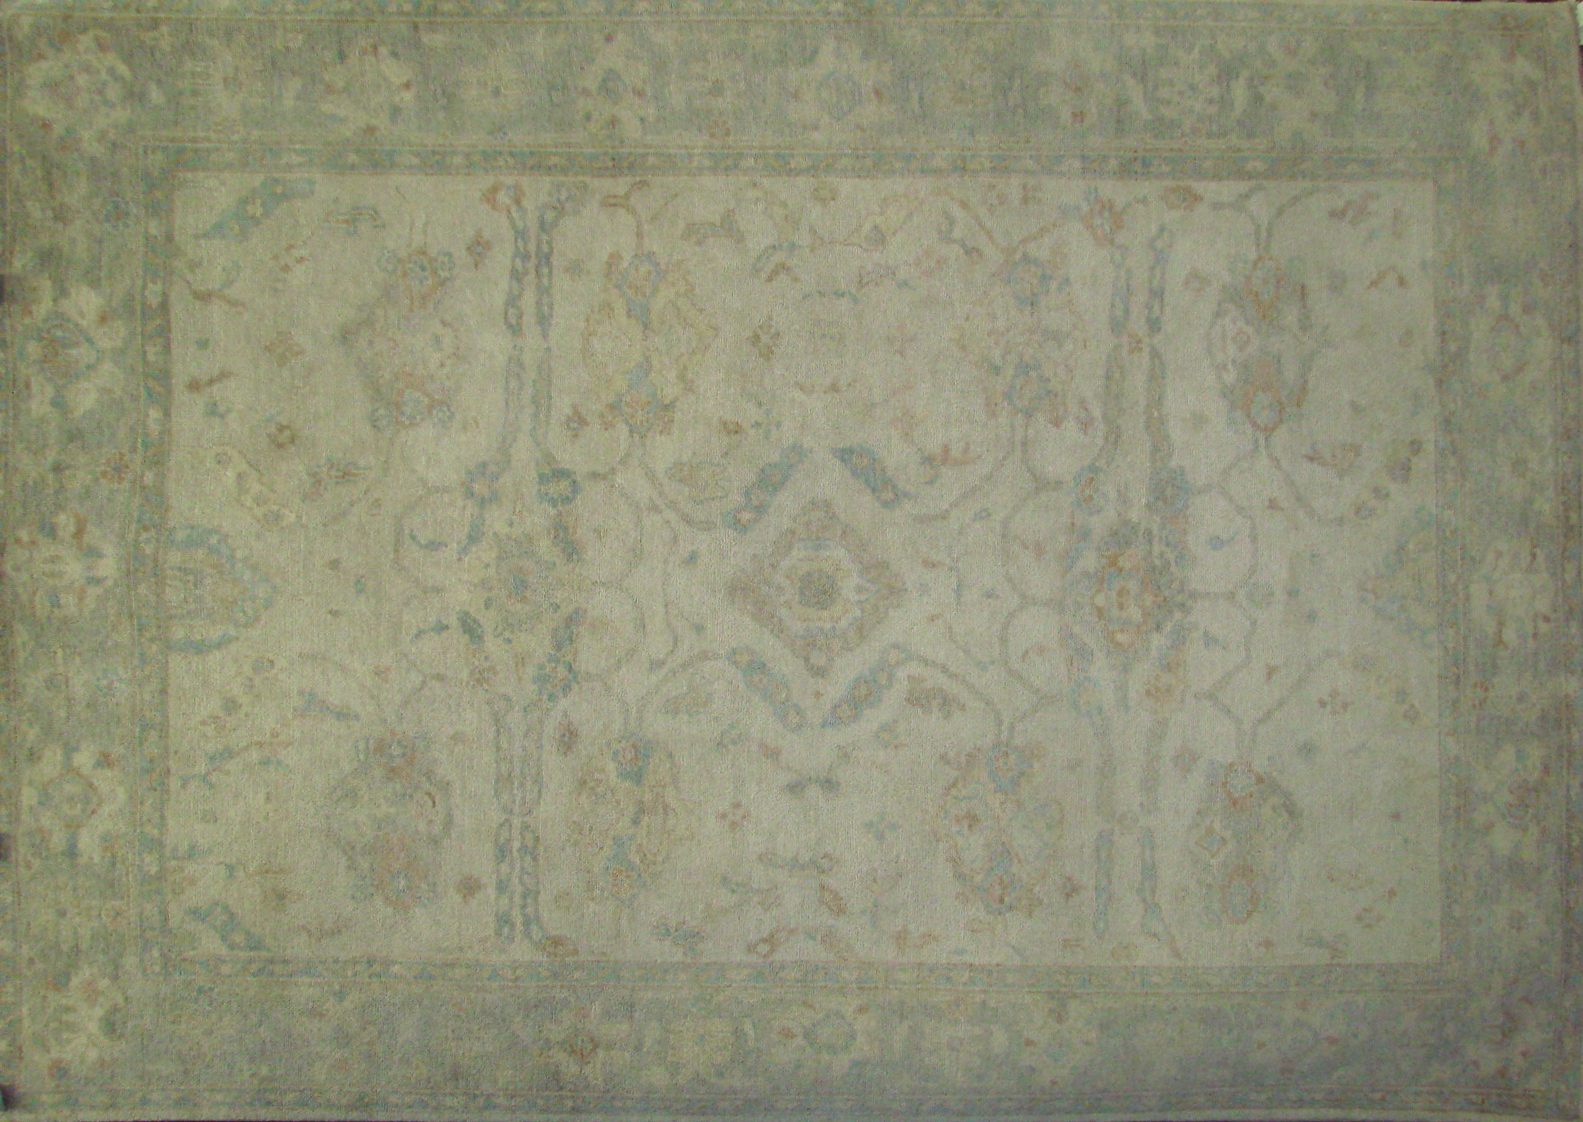 6x9 Oushak Hand Knotted Wool Area Rug - MR021450